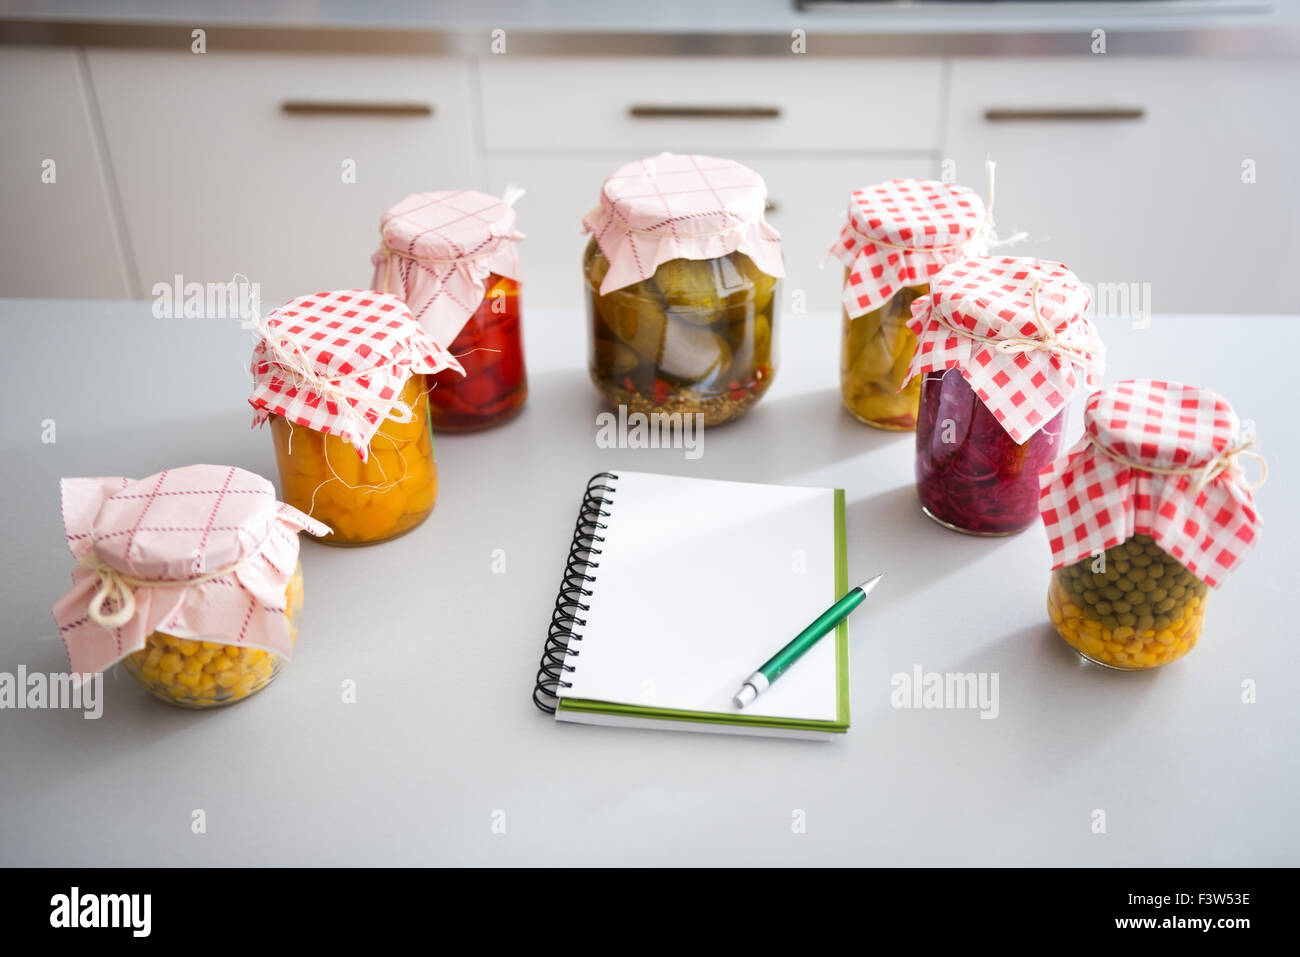 Corn, pumpkin, peppers, dill pickles, beans, red cabbage, and peas have all been preserved in glass jars. - Stock Image